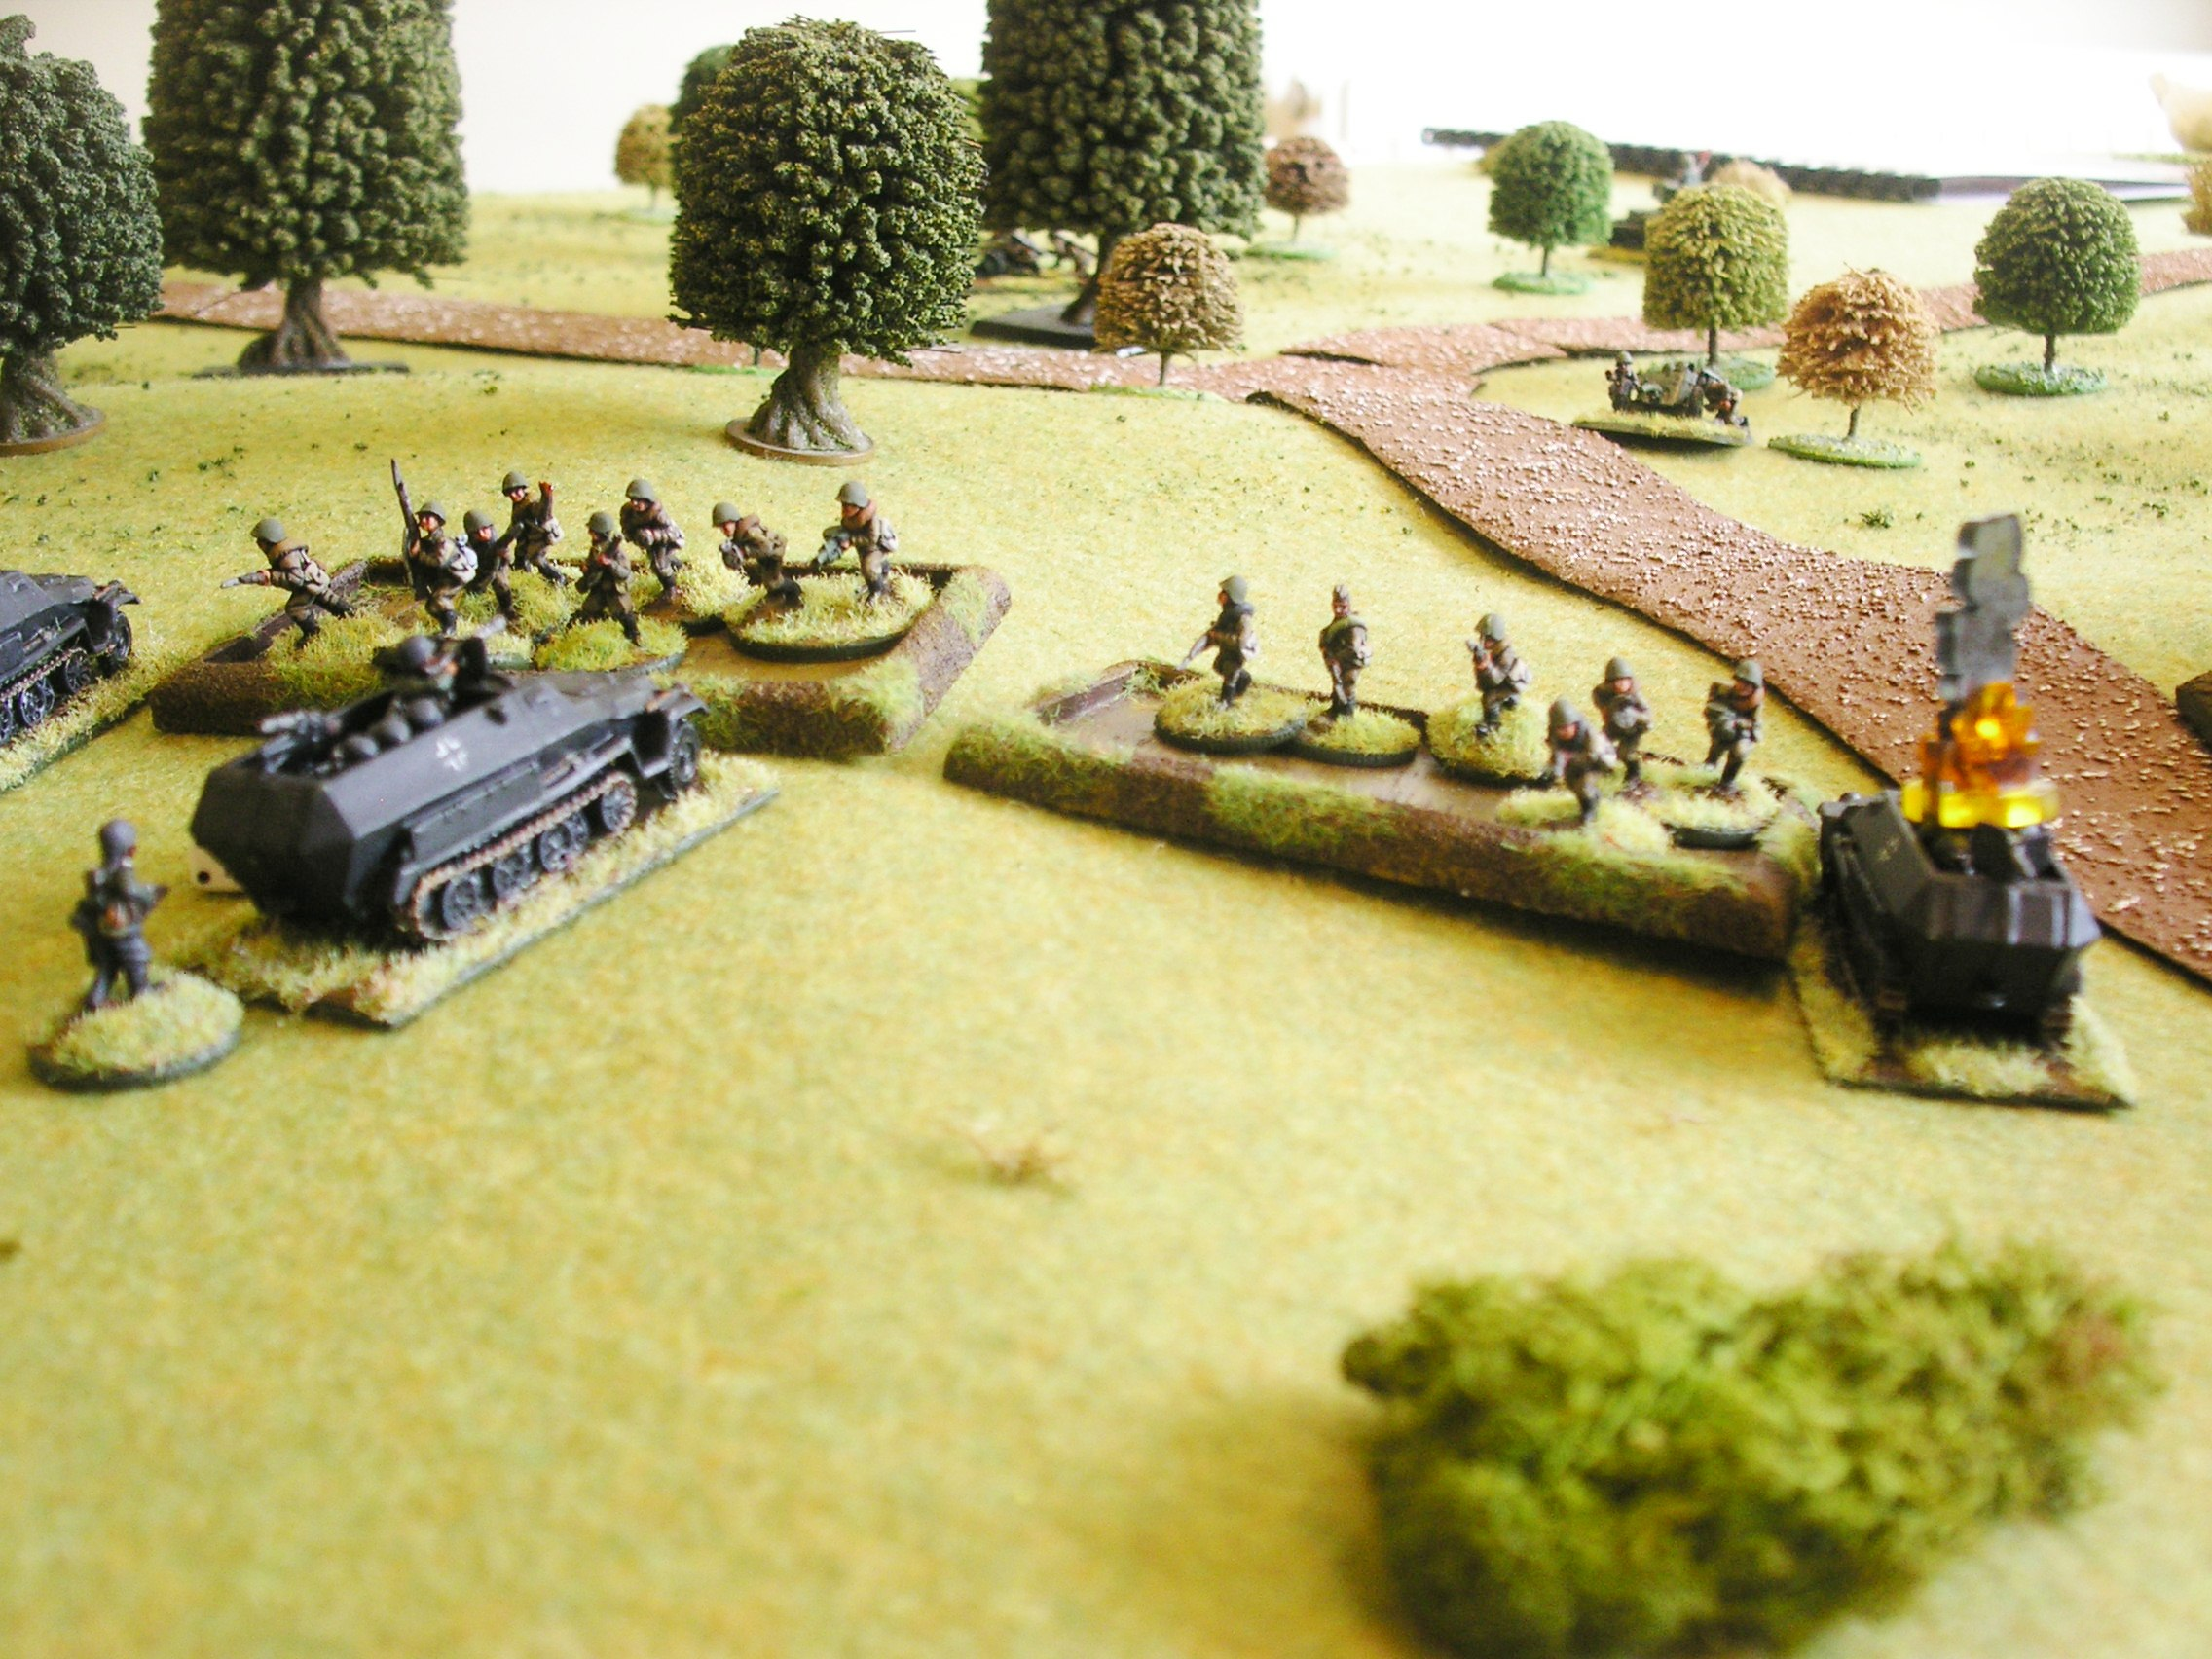 And the Germans are down half their infantry!